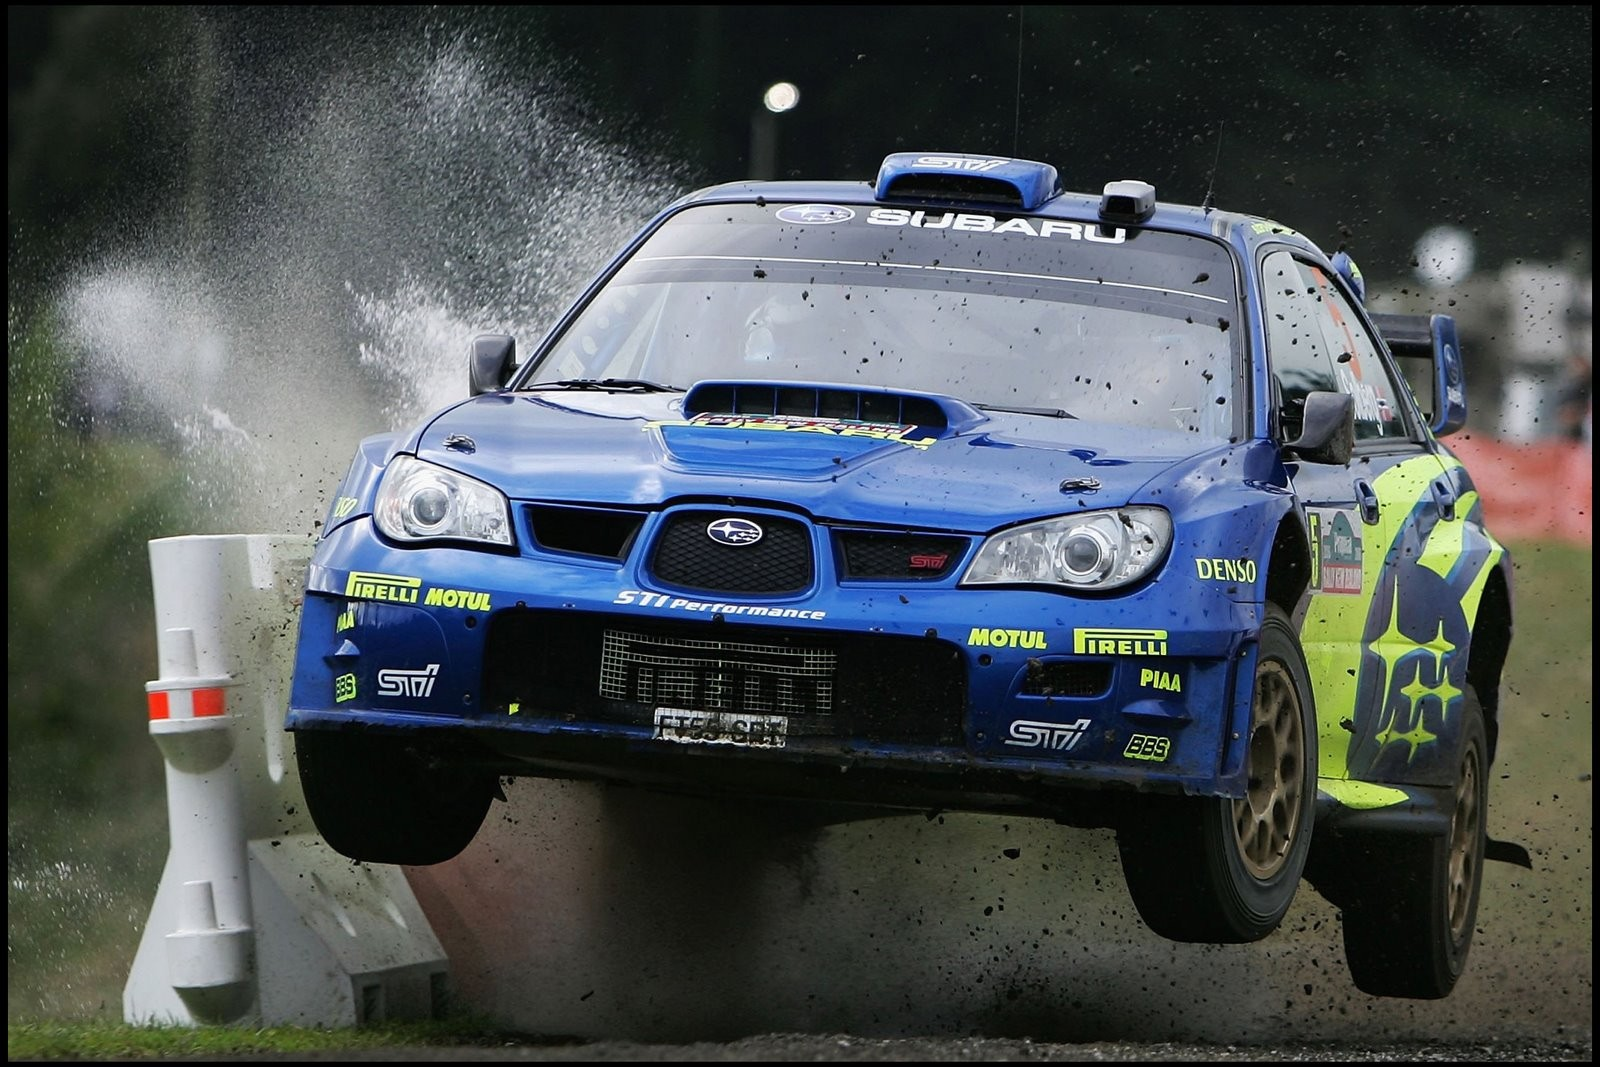 Car 5760x1080 Wallpaper Car Subaru Rally Cars Wallpapers Hd Desktop And Mobile